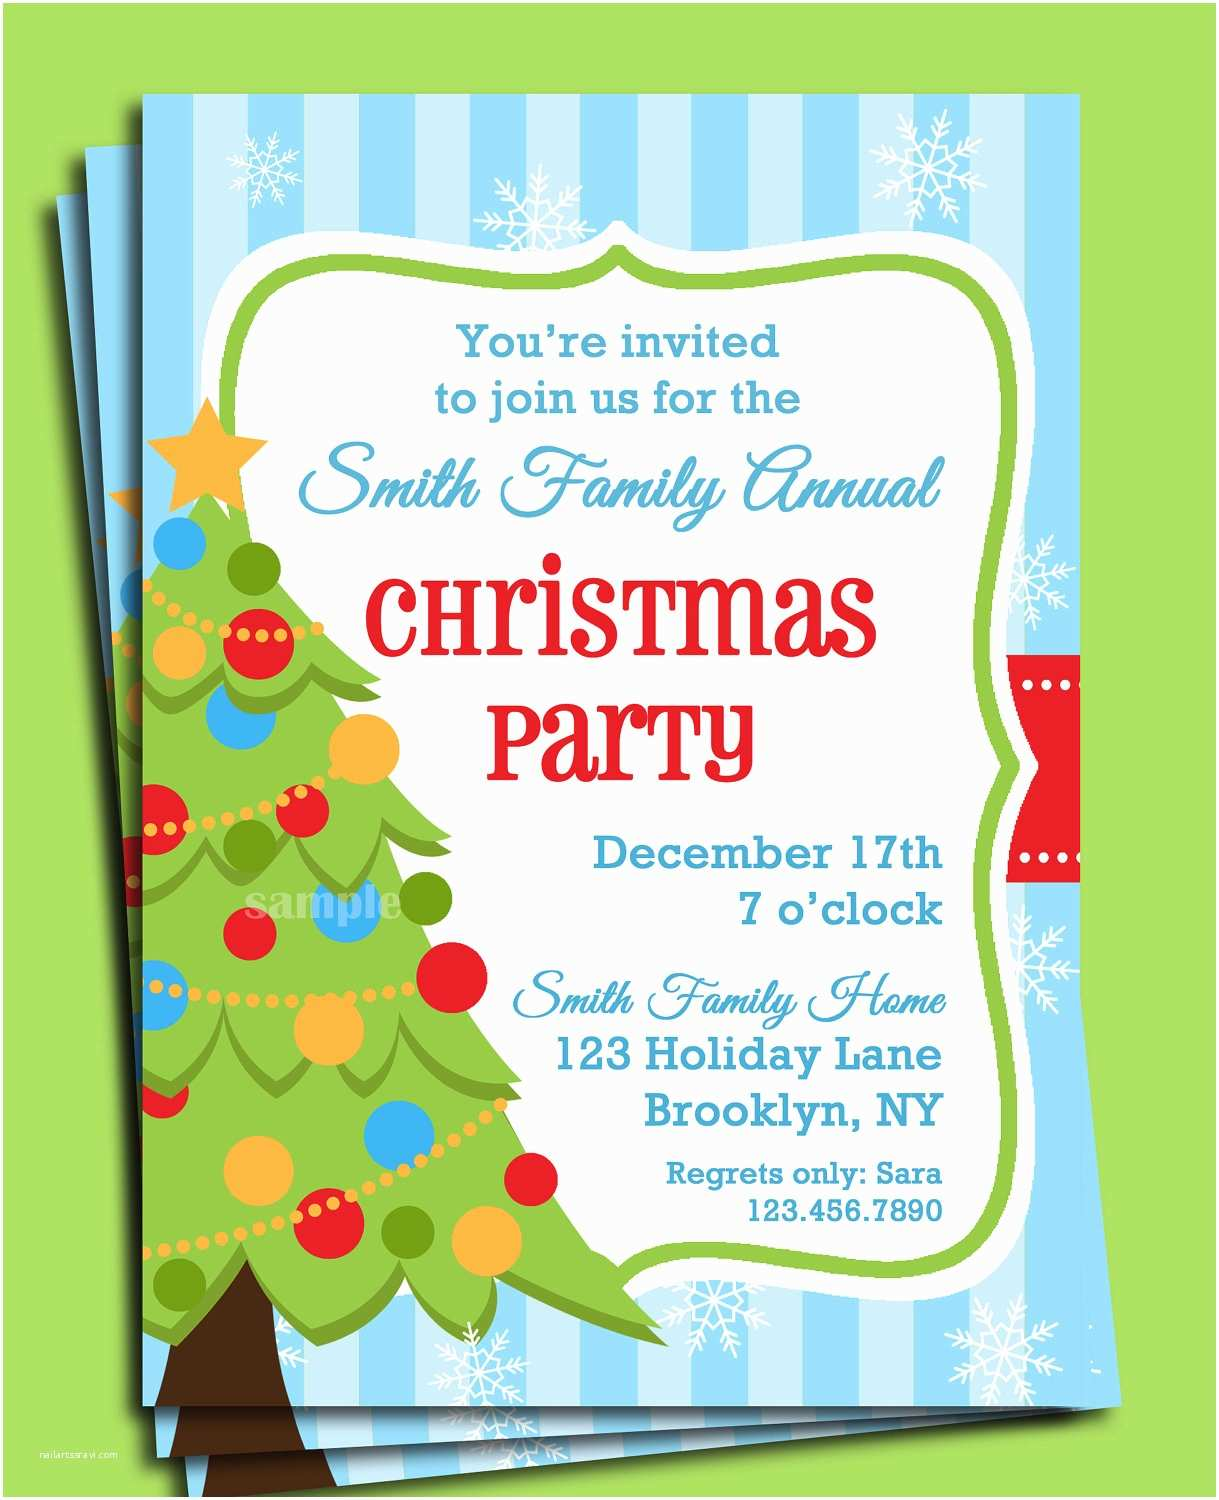 Office Christmas Party Invitation.Office Holiday Party Invitations Fice Christmas Party